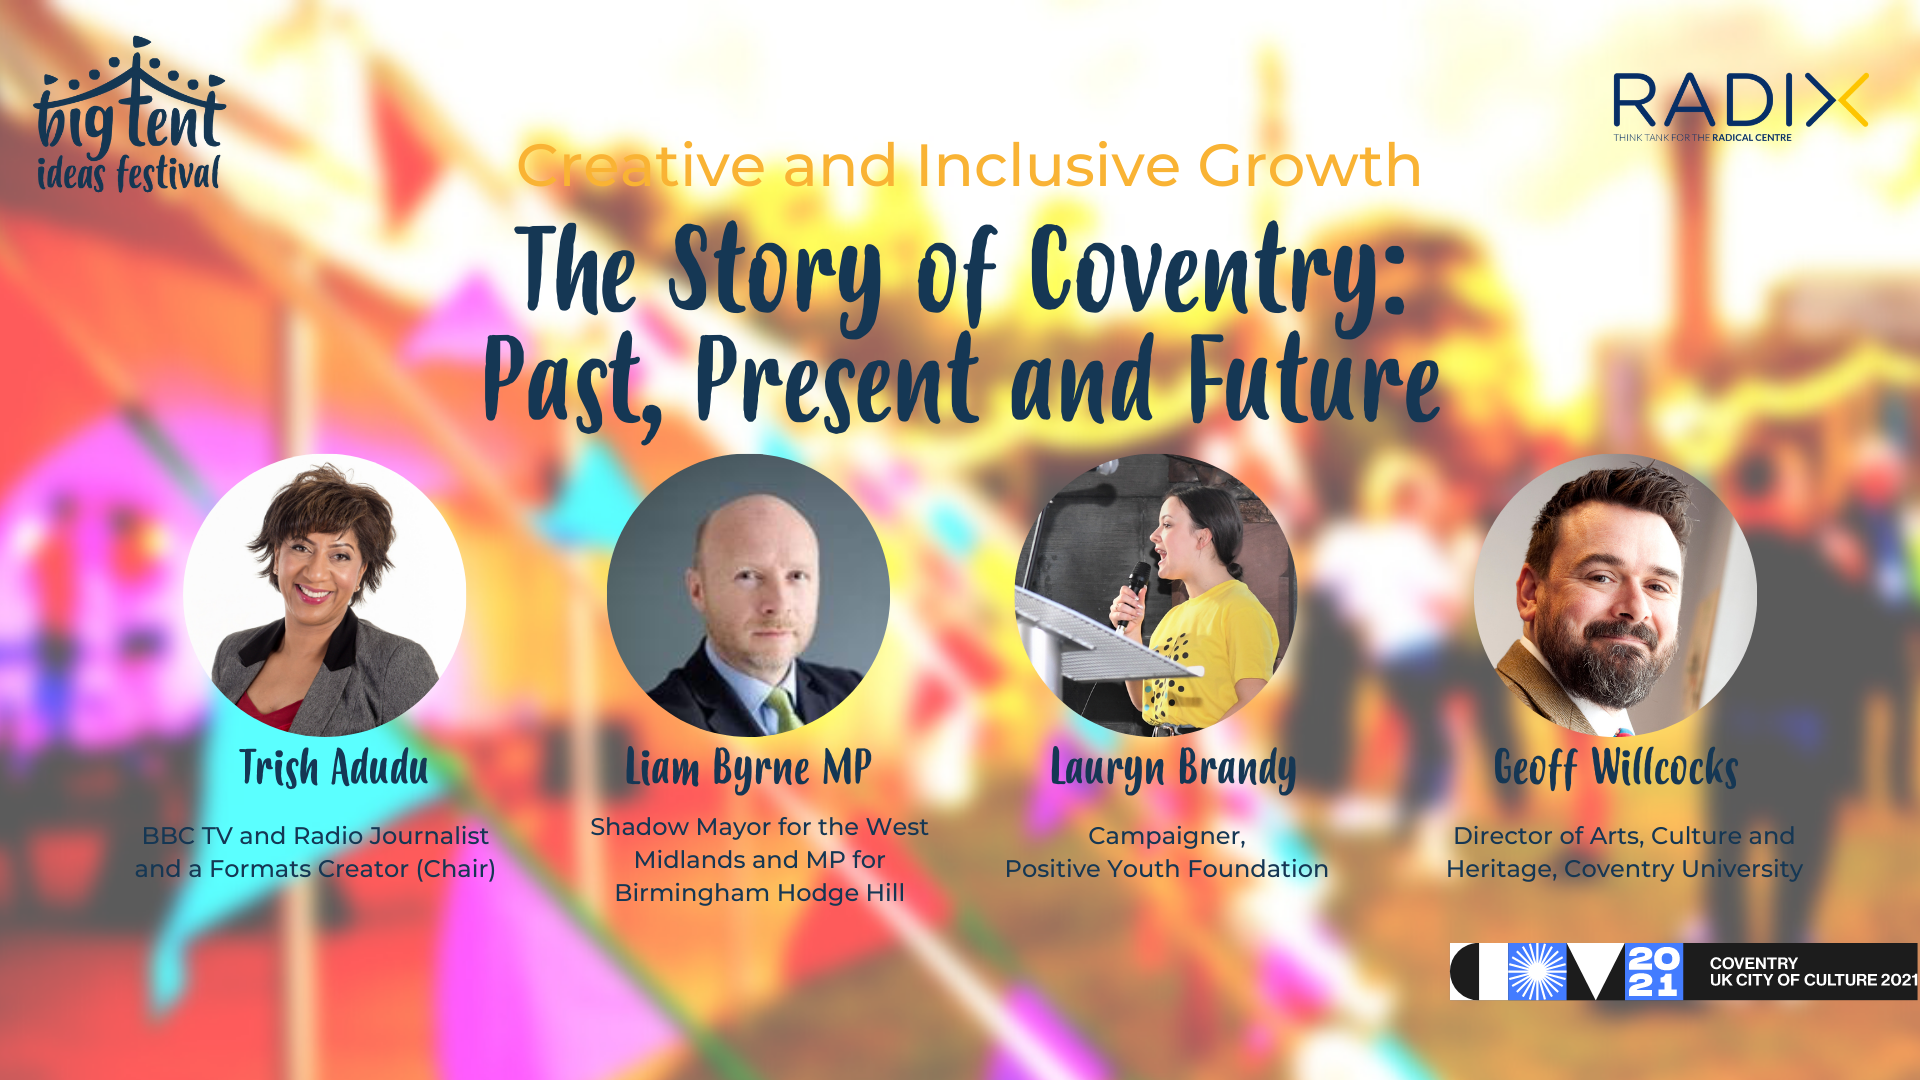 The Story of Coventry: Past, Present and Future